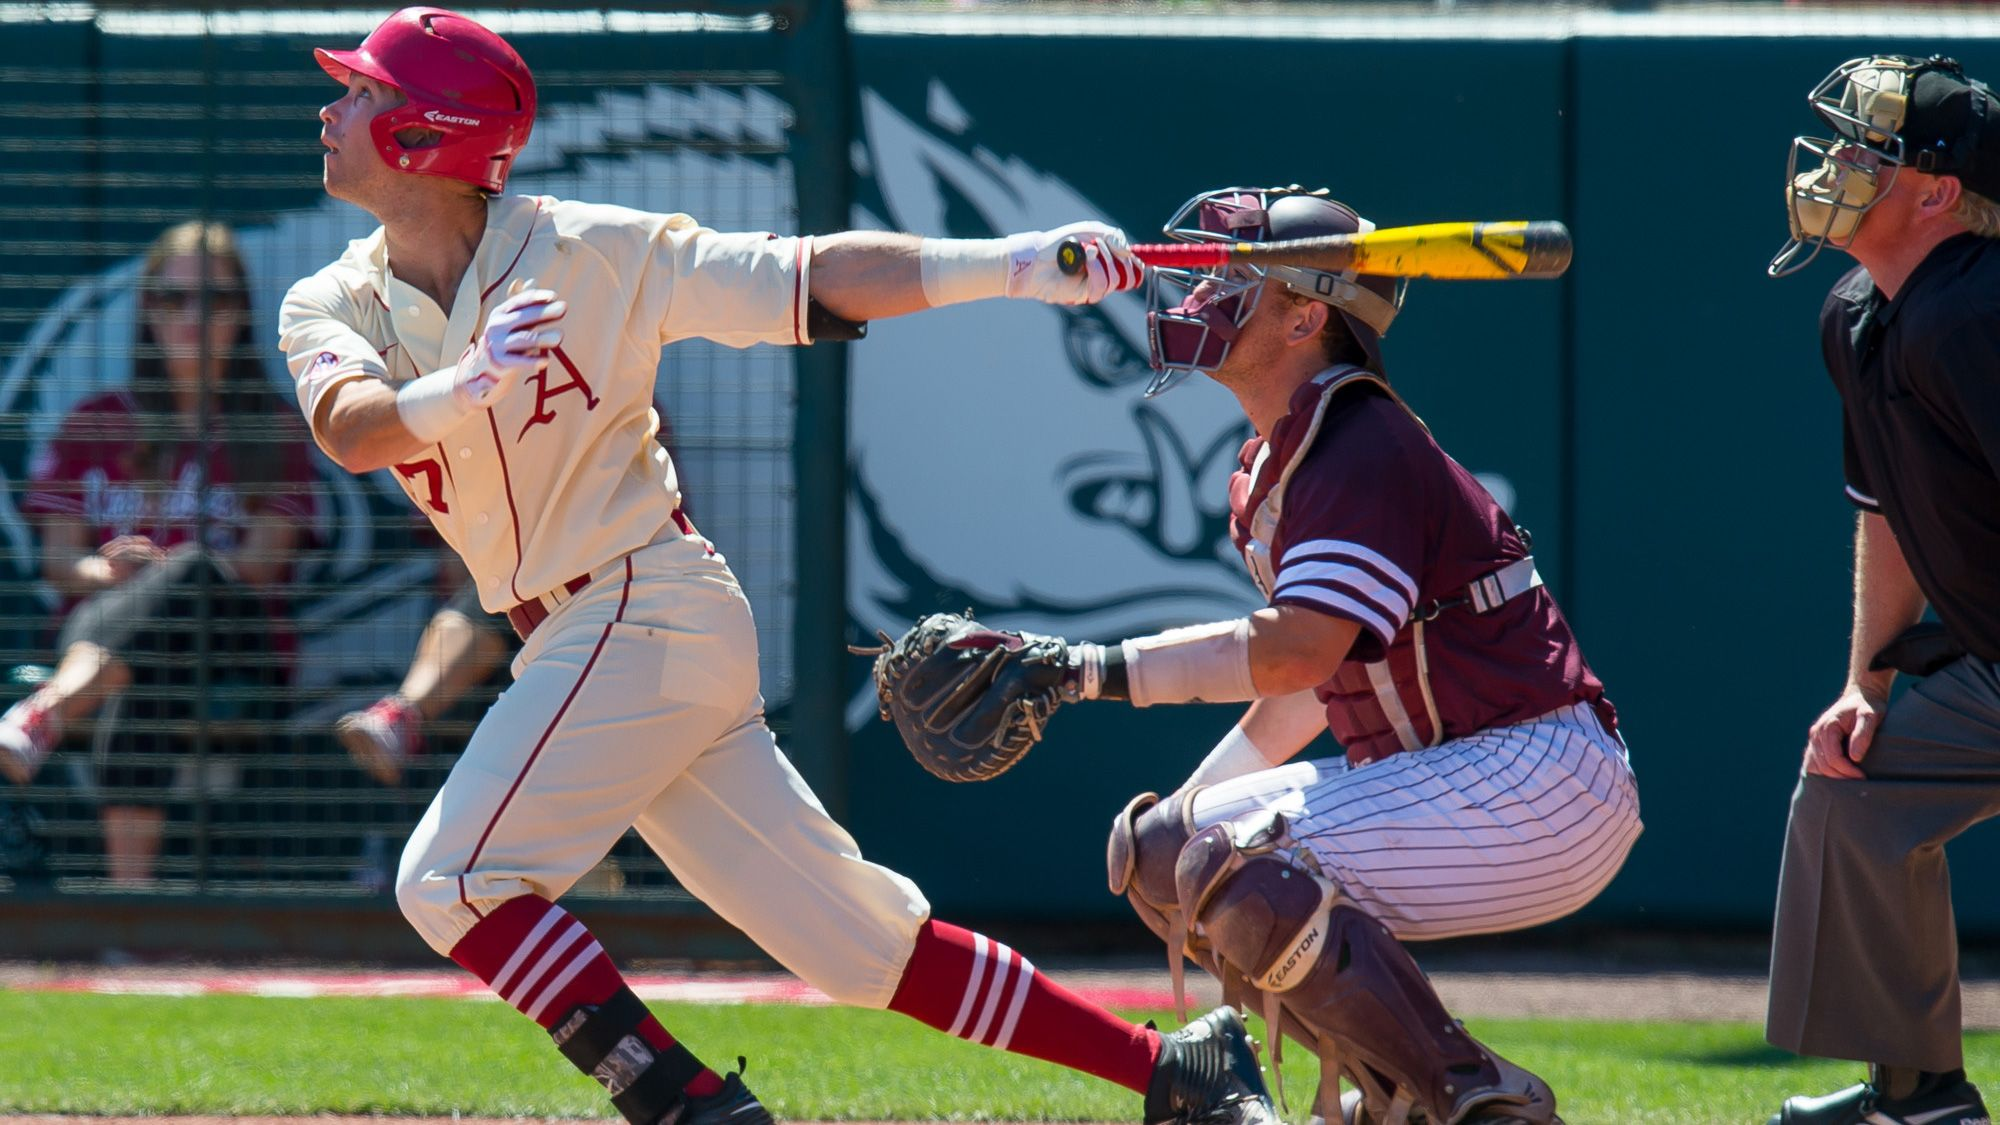 Arkansas falls to Missouri State